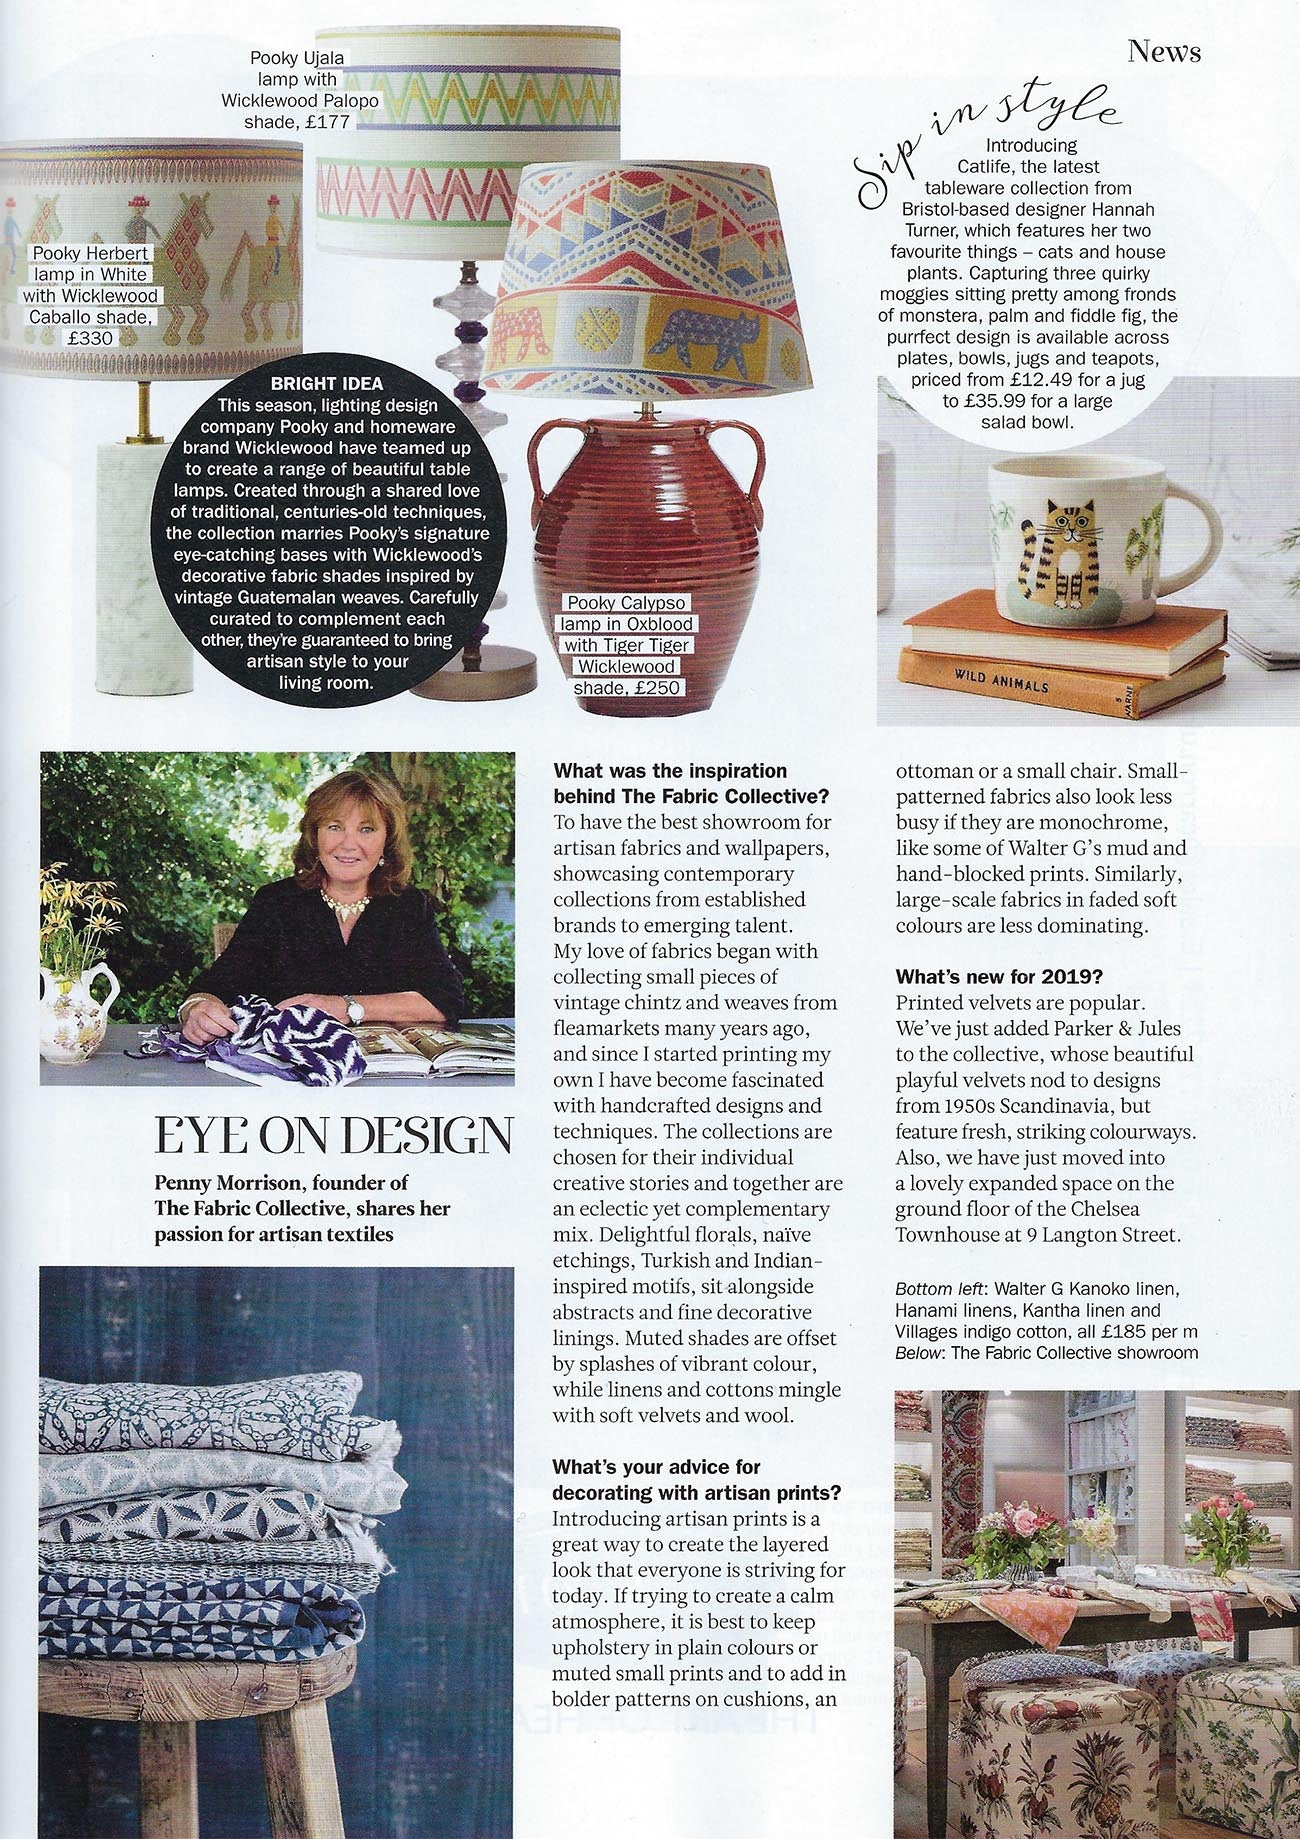 Wicklewood Press in Period Living February 2019 issue, featuring the Wicklewood X Pooky lampshade collaboration - Caballo, Tiger Tiger and Palopo